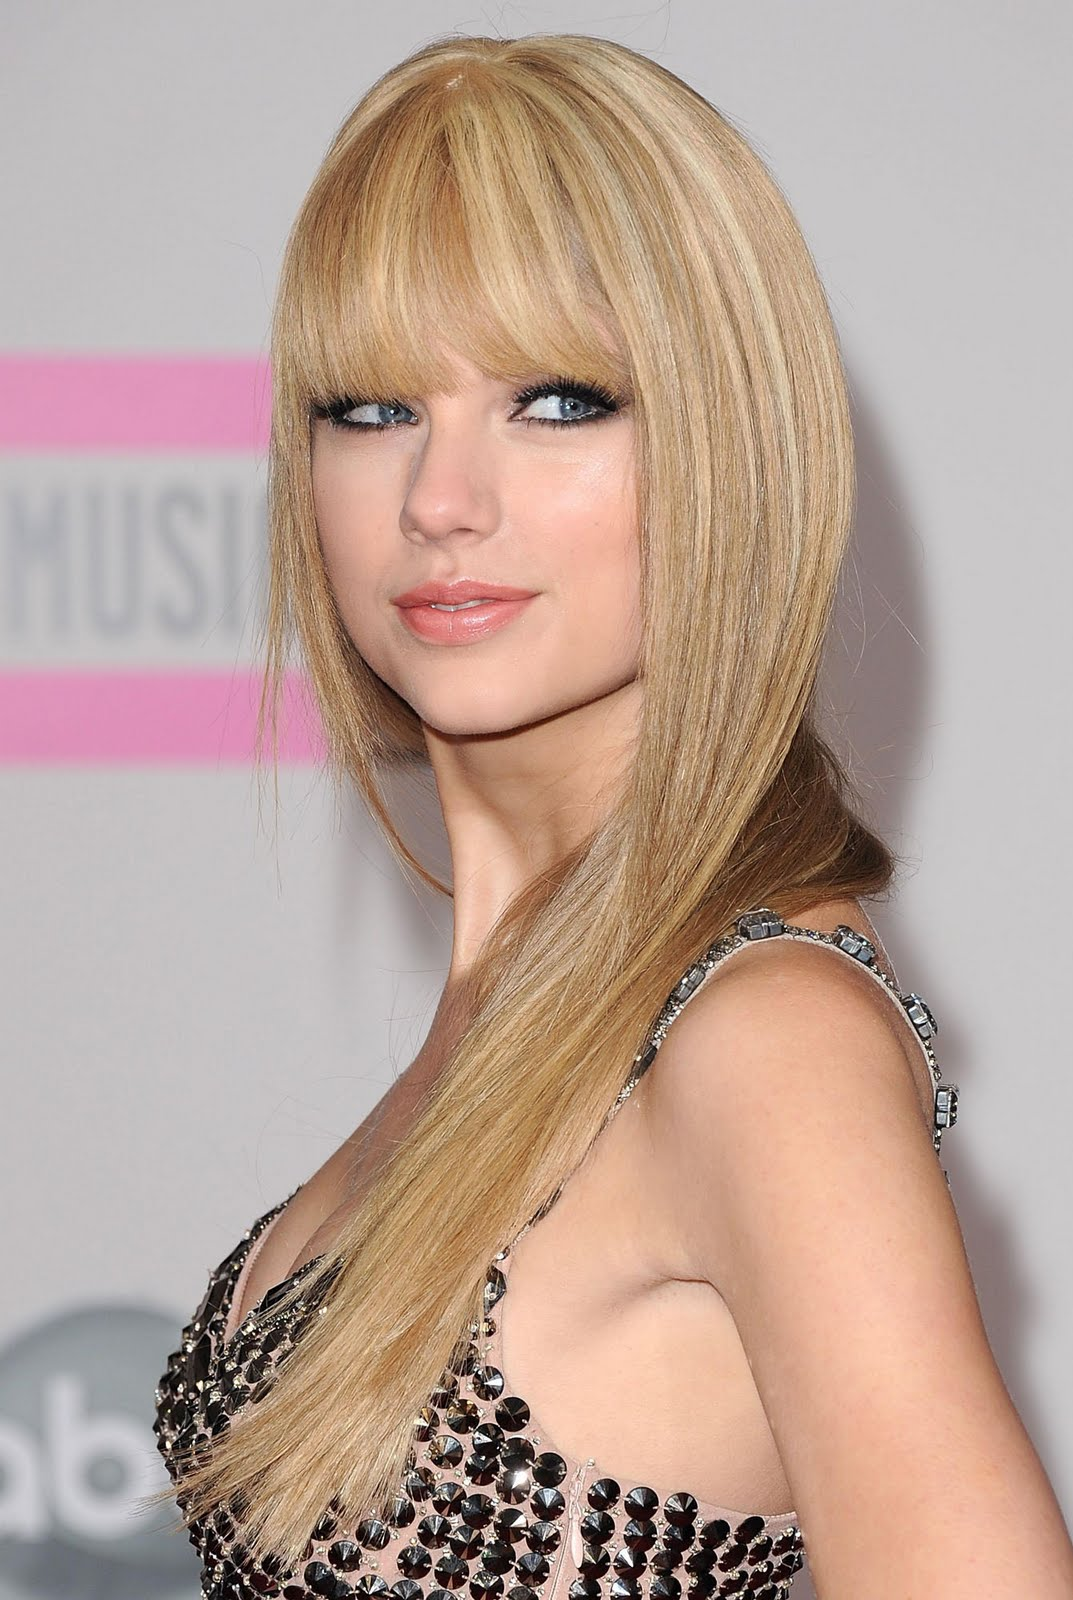 Taylor swift porn pictures